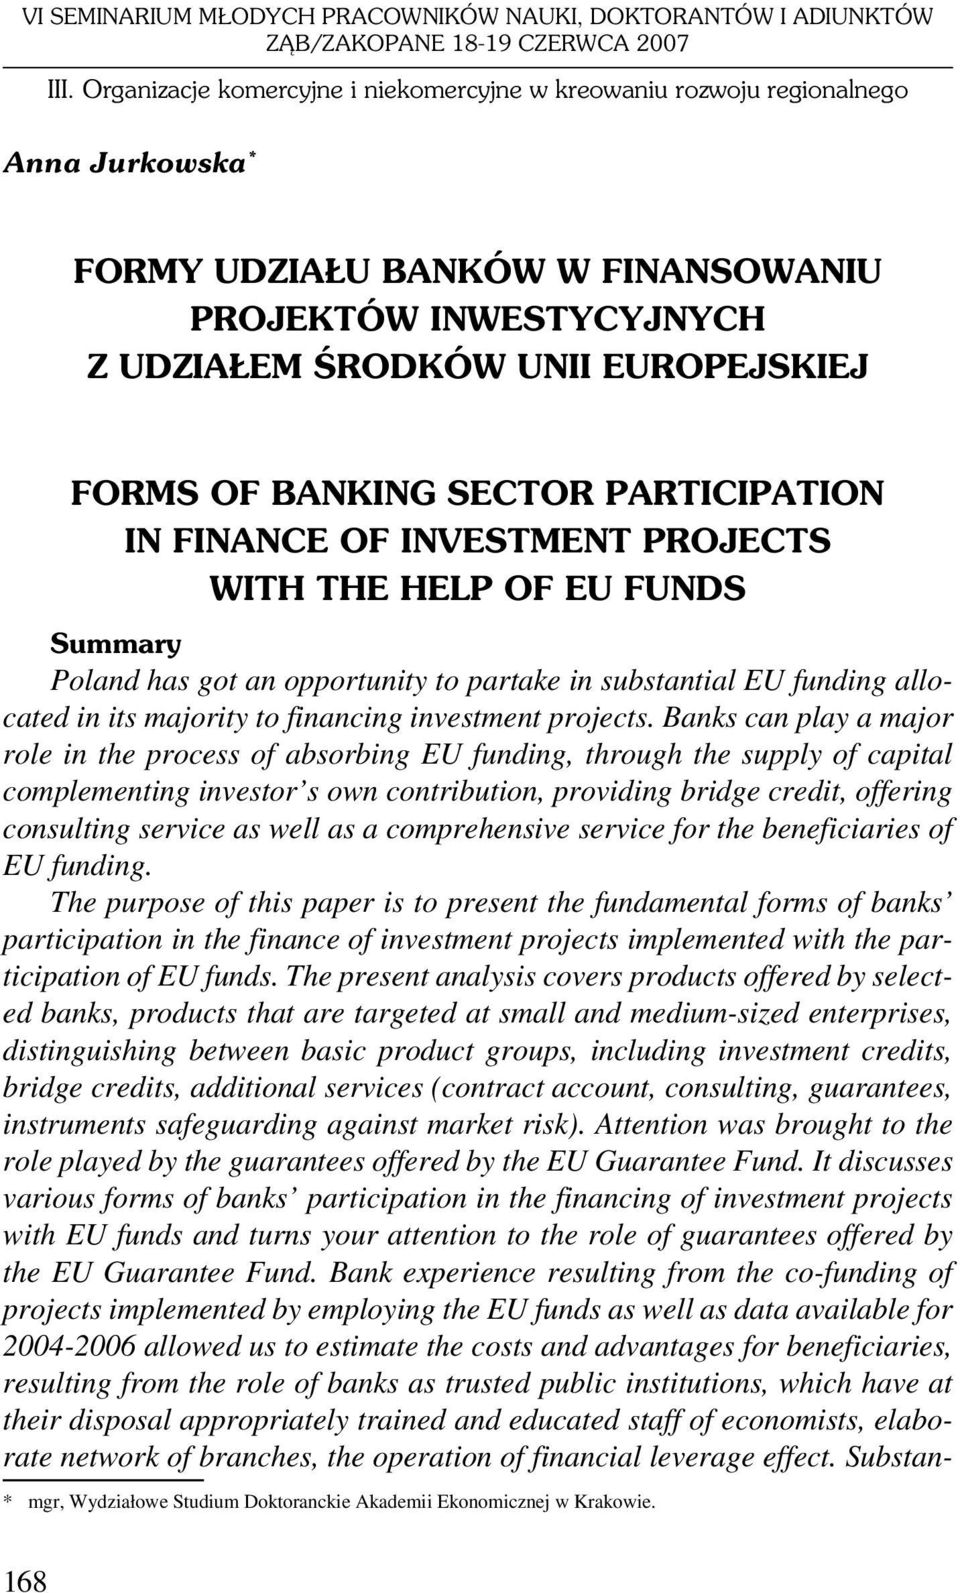 BANKING SECTOR PARTICIPATION IN FINANCE OF INVESTMENT PROJECTS WITH THE HELP OF EU FUNDS Summary Poland has got an opportunity to partake in substantial EU funding allocated in its majority to